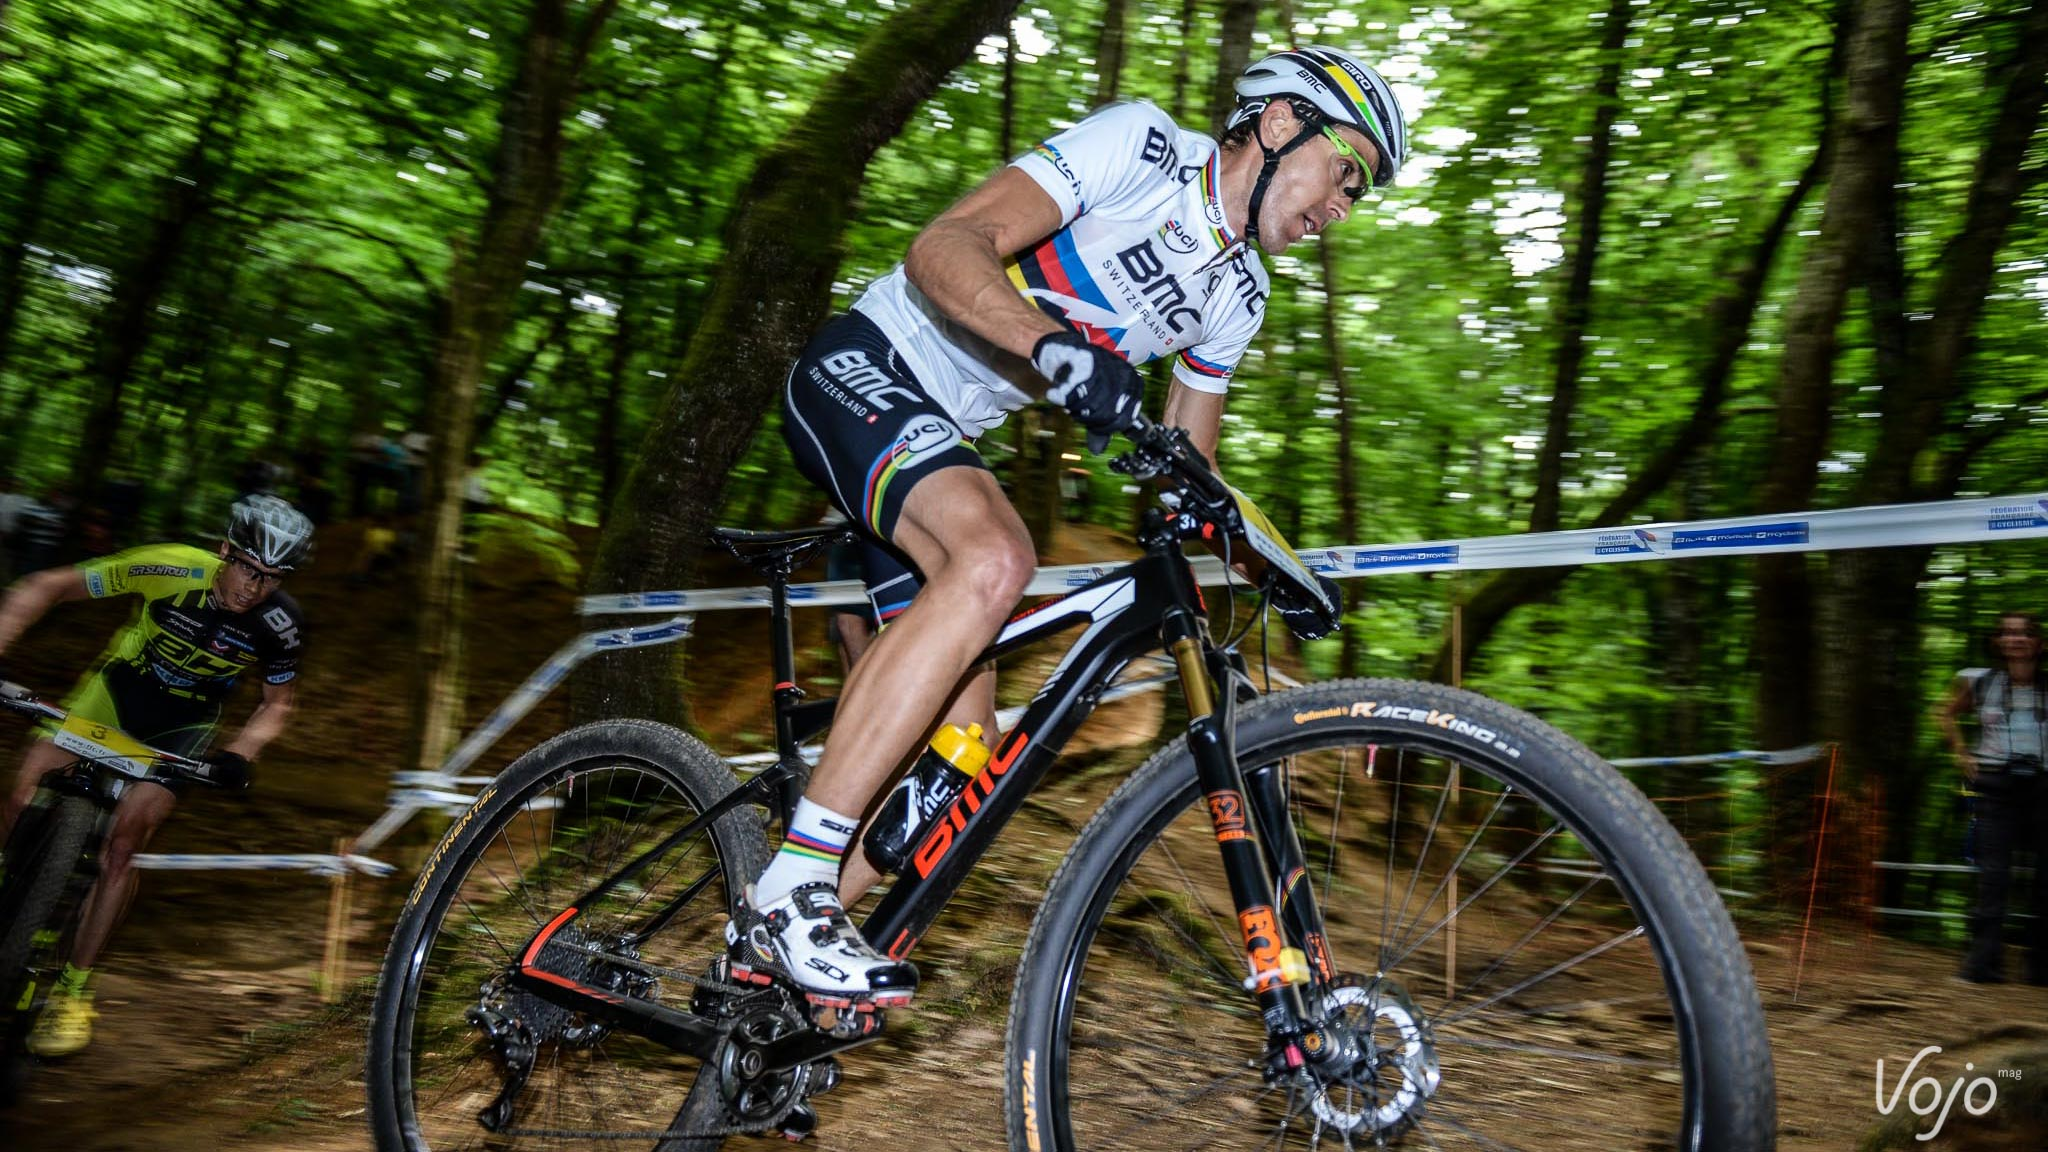 Coupe_France_VTT_Lons_le_Saunier_Absalon_Marotte_Koretzky_Copyright_Romain_Laurent_VojoMag-3